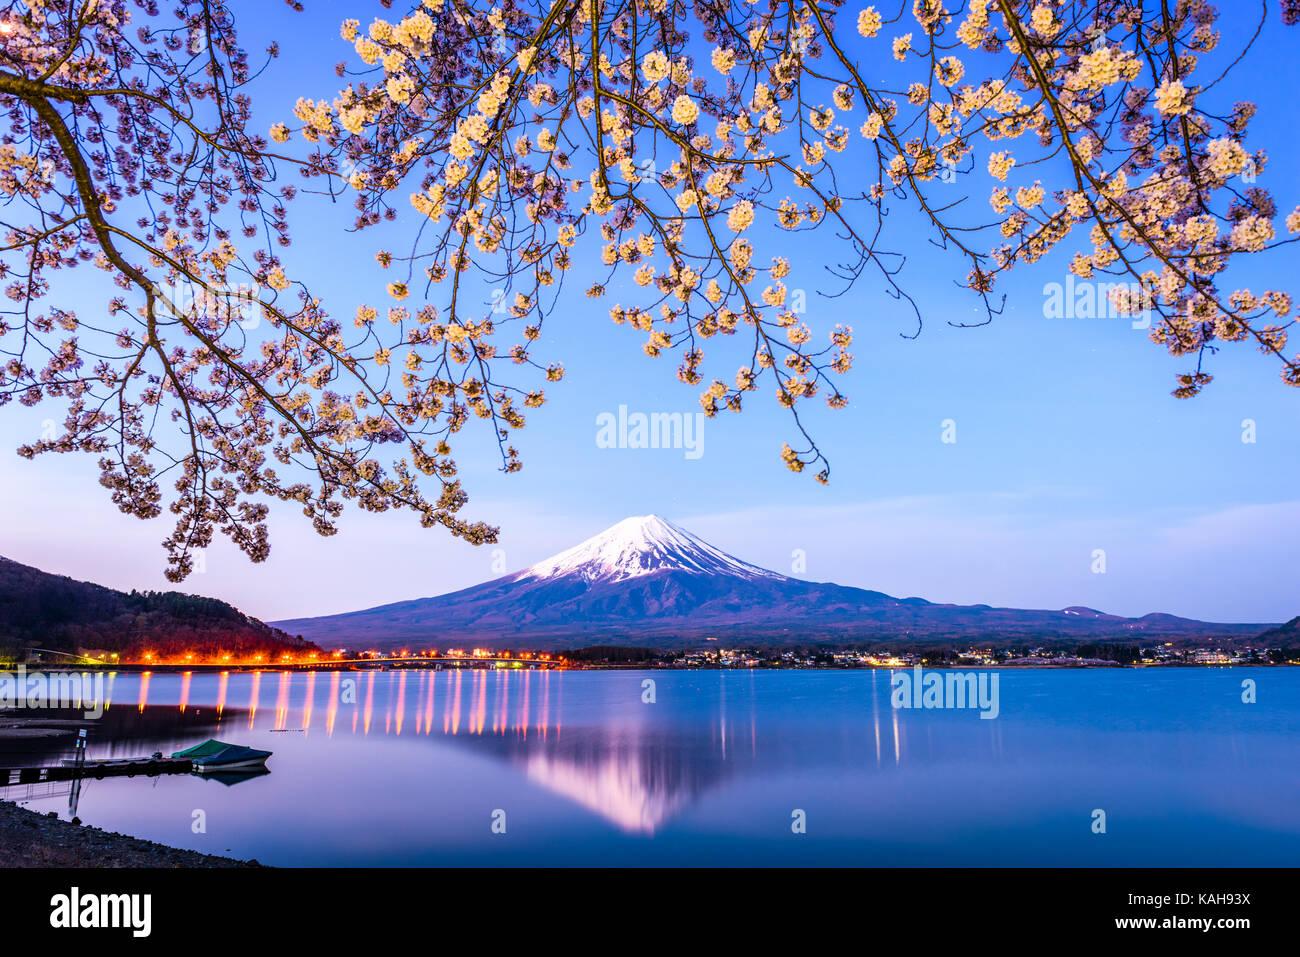 Mt Fuji. sur le lac Kawaguchi, le Japon durant la saison du printemps. Photo Stock